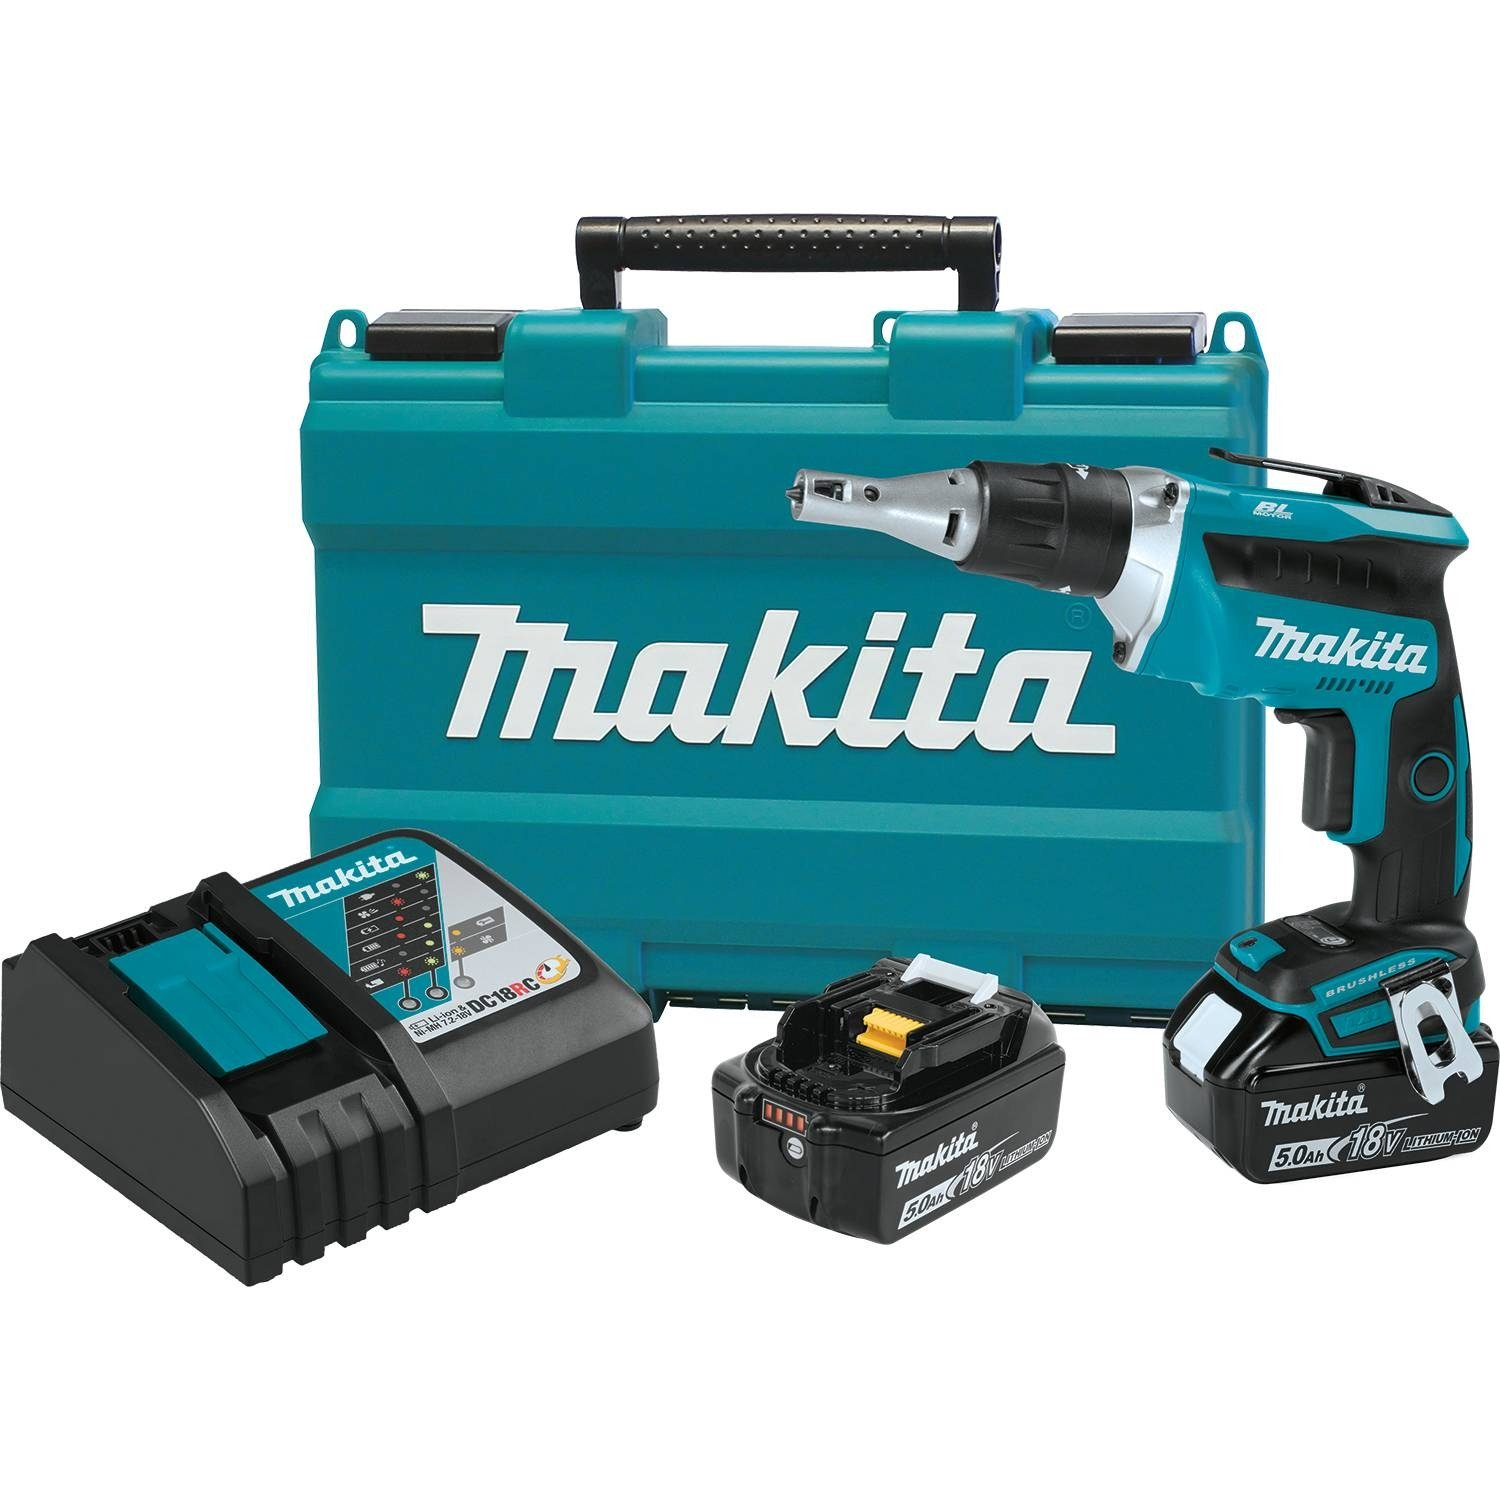 Makita XSF03T 18V LXT Lithium-Ion COMPACT Brushless Cordless Drywall Screwdriver Kit (5.0Ah) by Makita